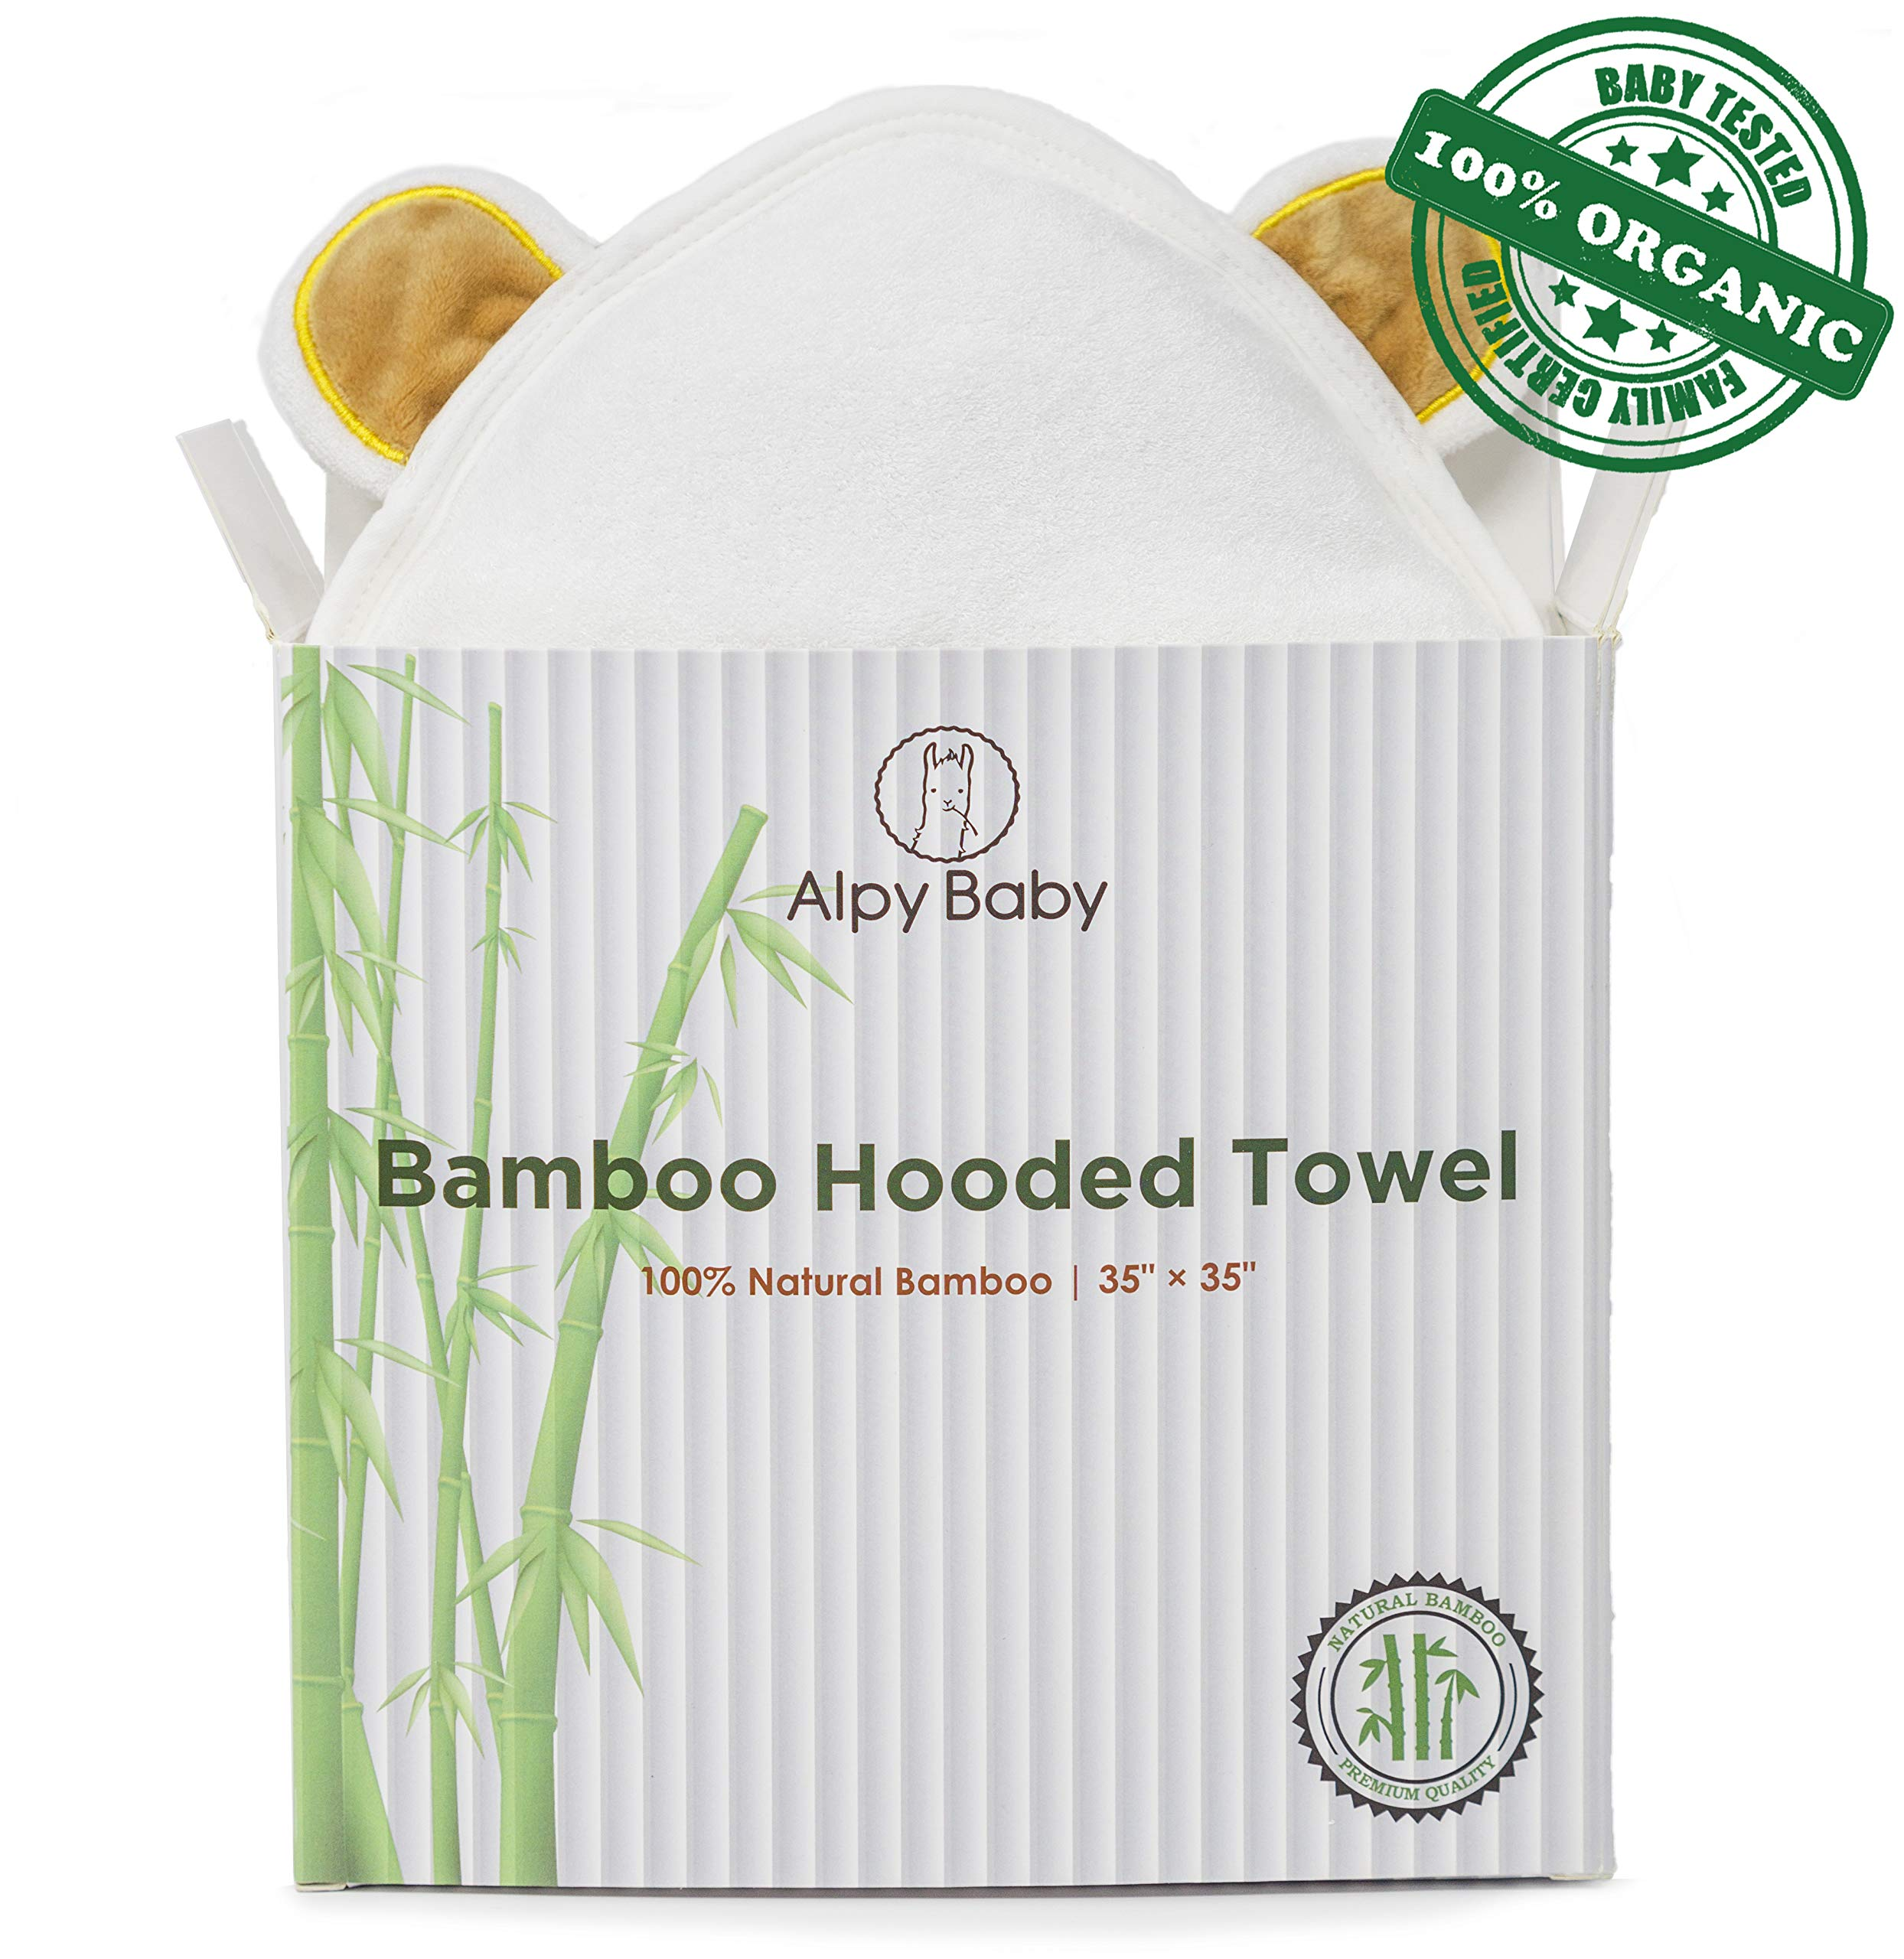 Alpy Baby Organic Bamboo Hooded Towel - Premium Quality Hypoallergenic Towel - 0-5 Years by Alpy Baby